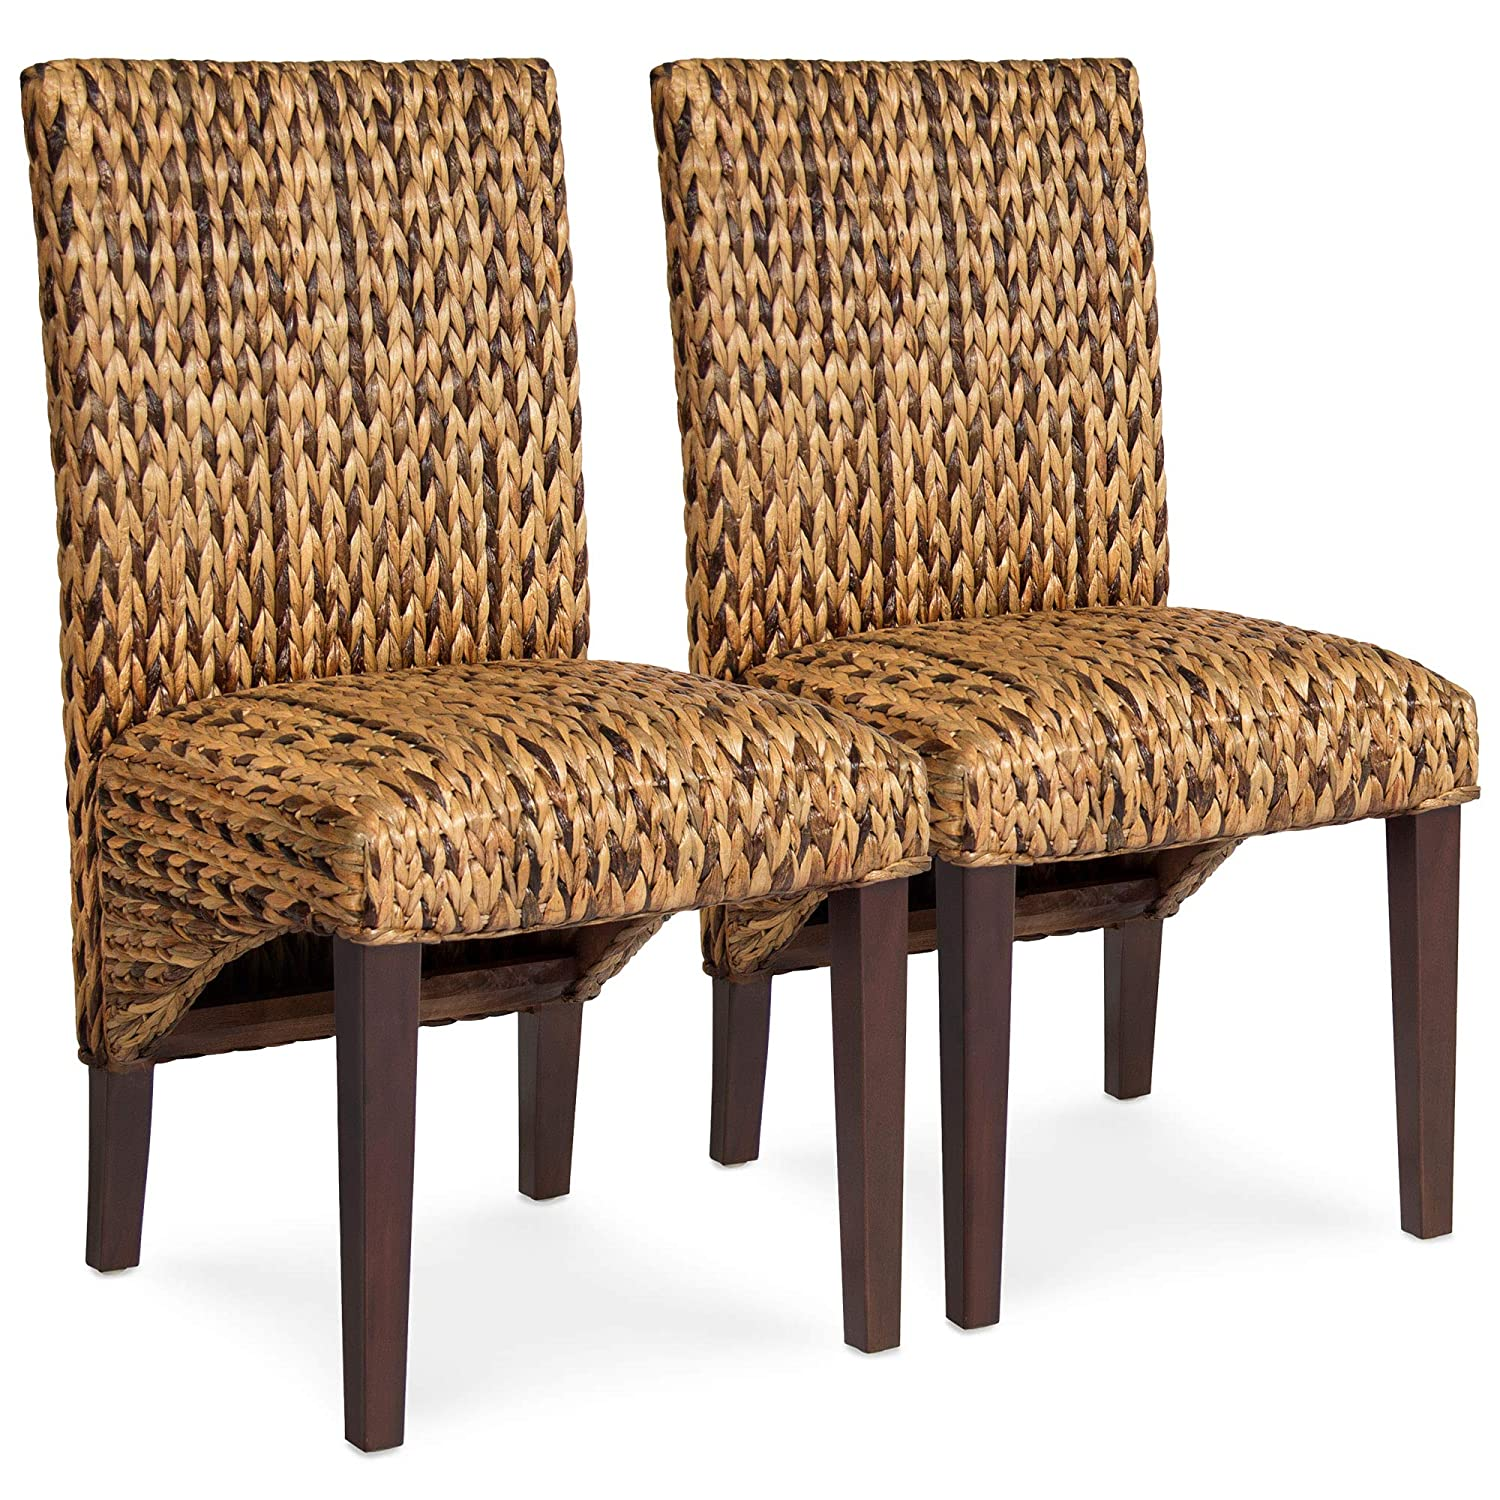 Best Choice Products Set of 2 Elegant Hand Woven Seagrass Dining Side Chairs w/Sturdy Wooden Legs and High Backrest for Home Kitchen, Brown